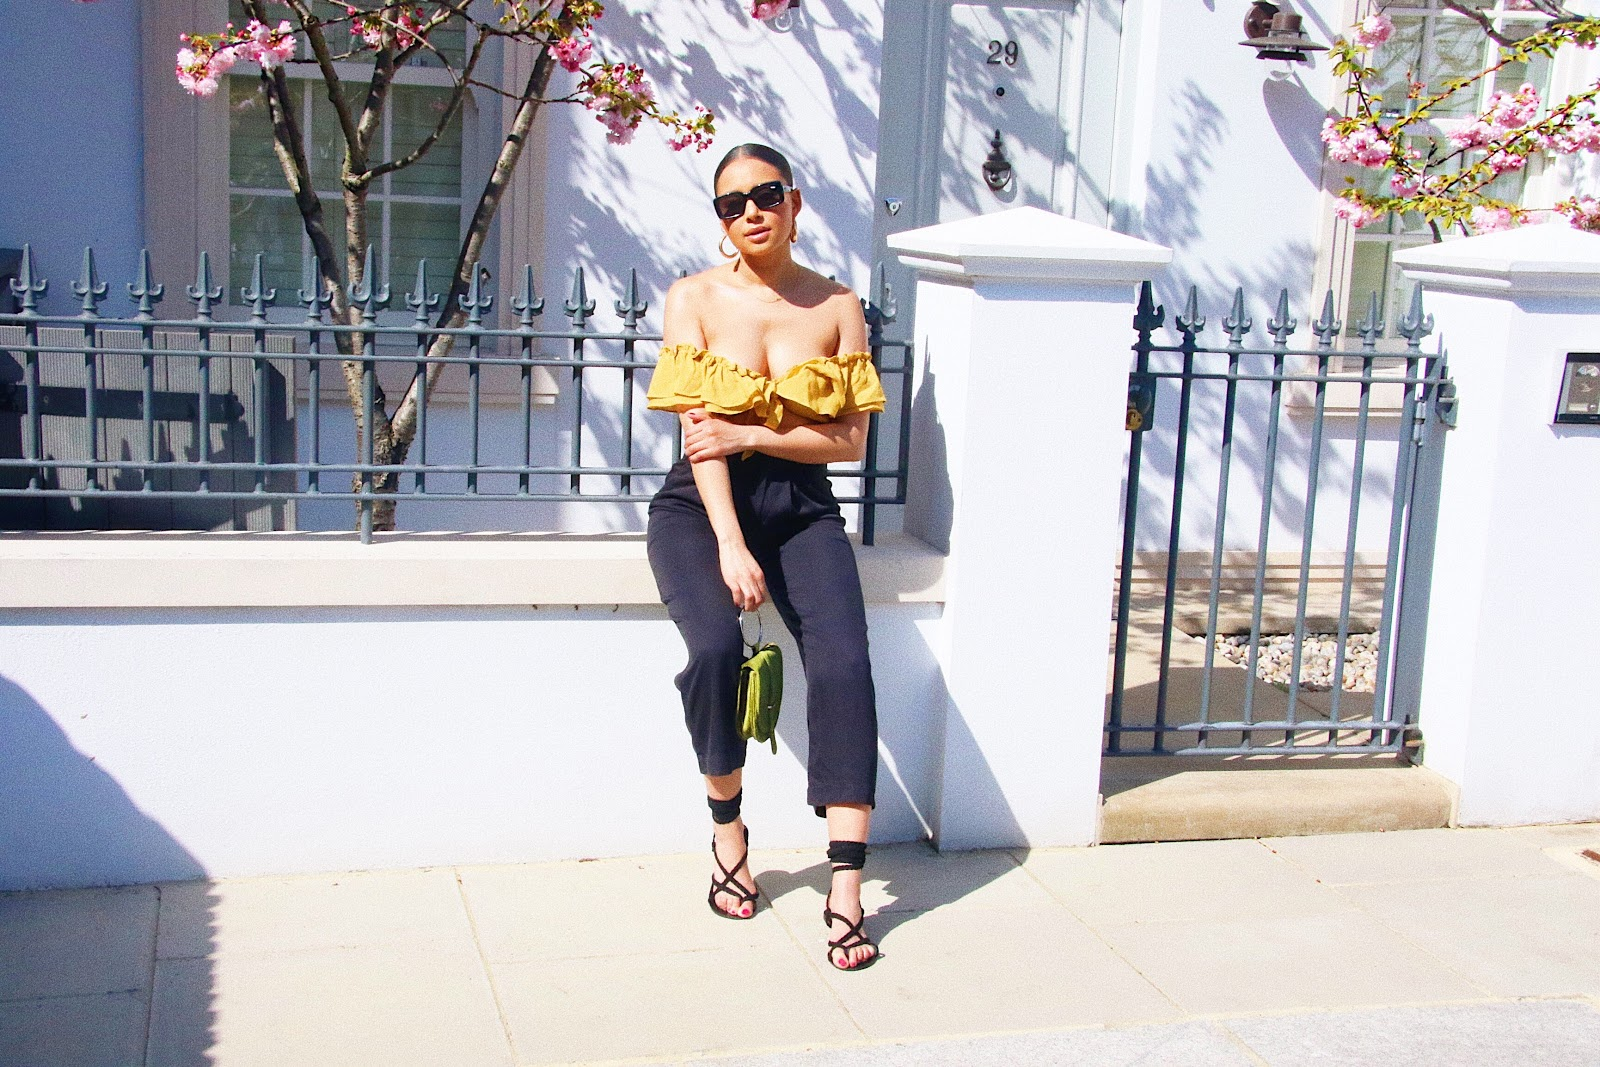 wrap sandals, yellow top, crop top, yellow crop top, culottes,